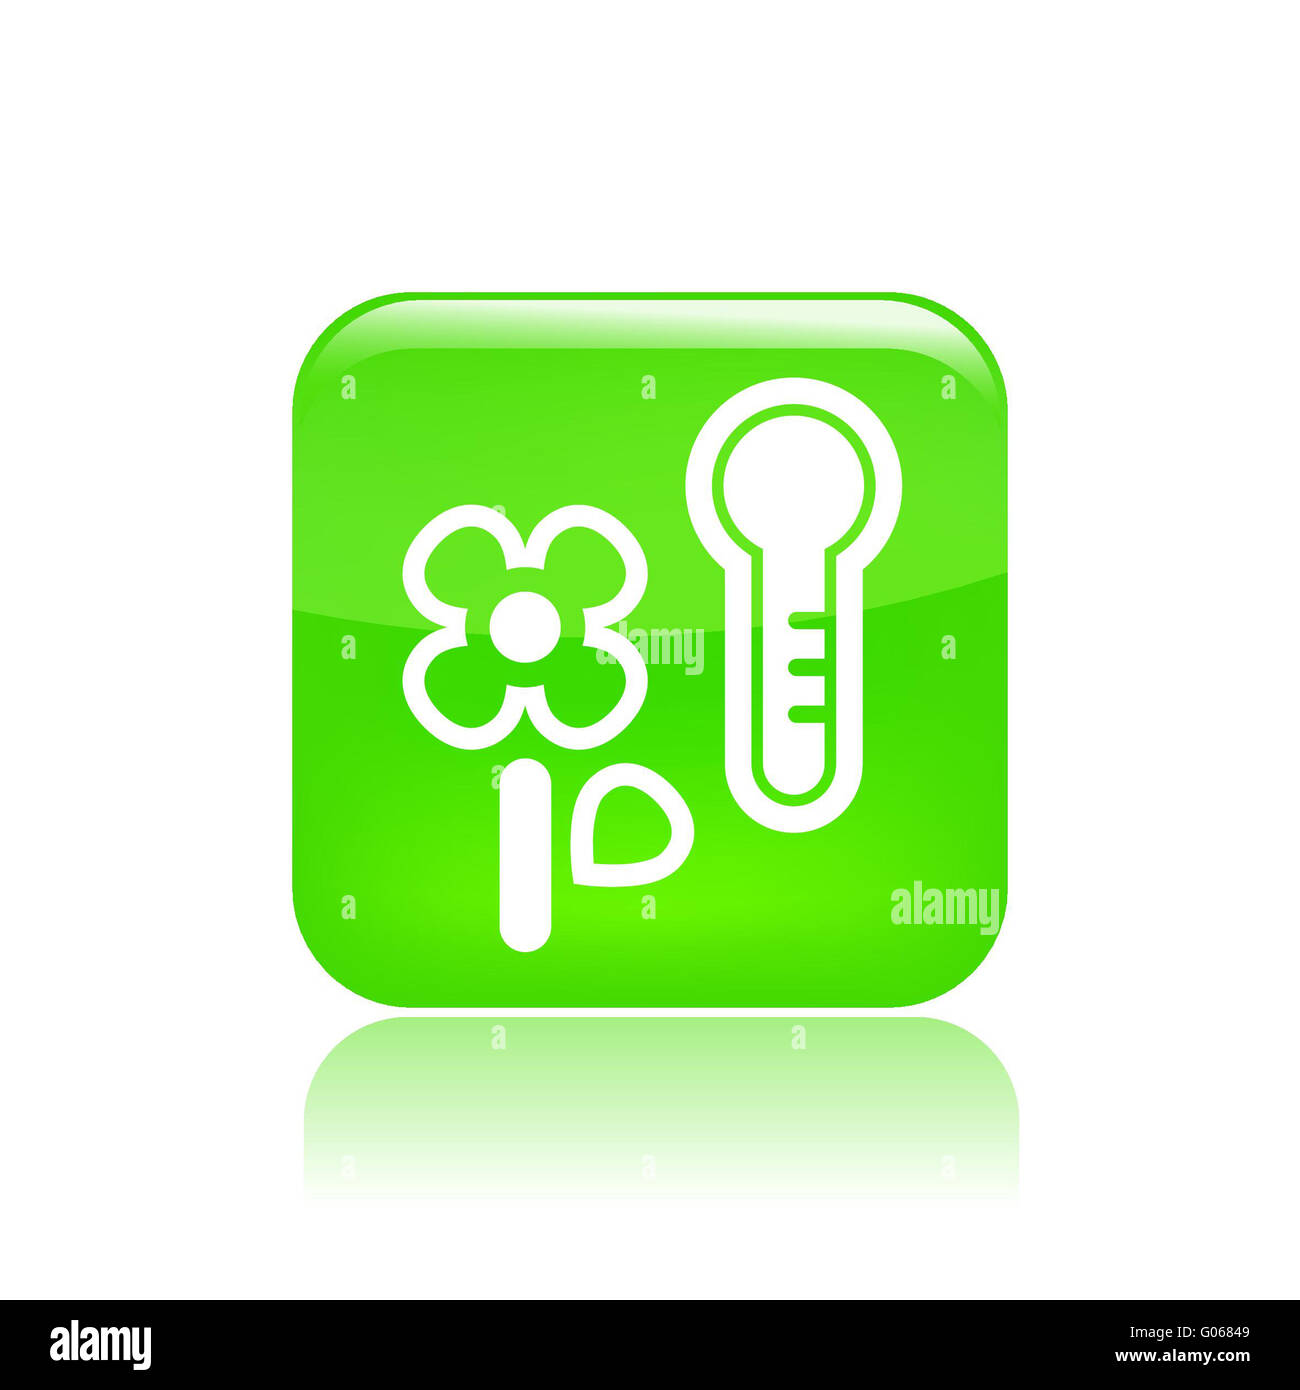 Vector illustration of temperature flower icon - Stock Image